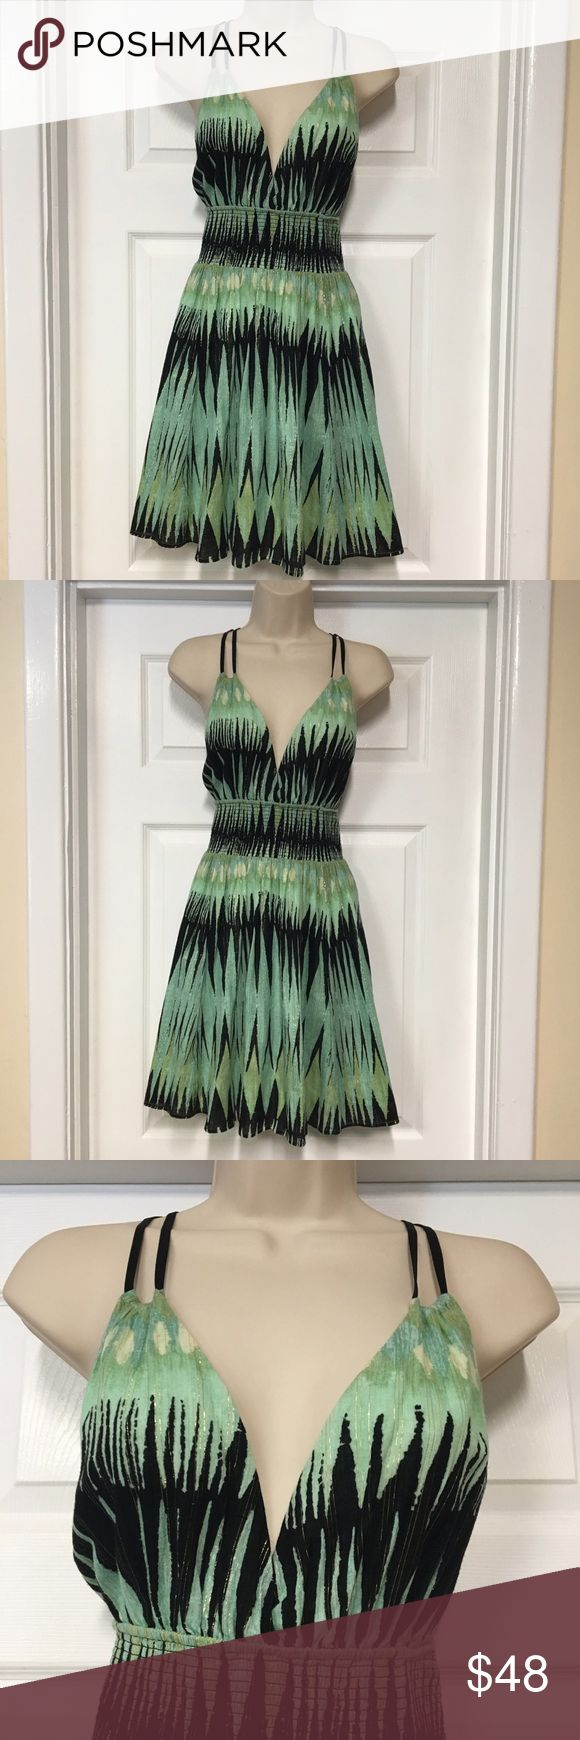 Free people mint green & black sundress medium Very pretty sundress from free people. Size medium. Beautiful shade of mint green mixed with black and tiny gold threads woven through it. Elastic waist. Free People Dresses